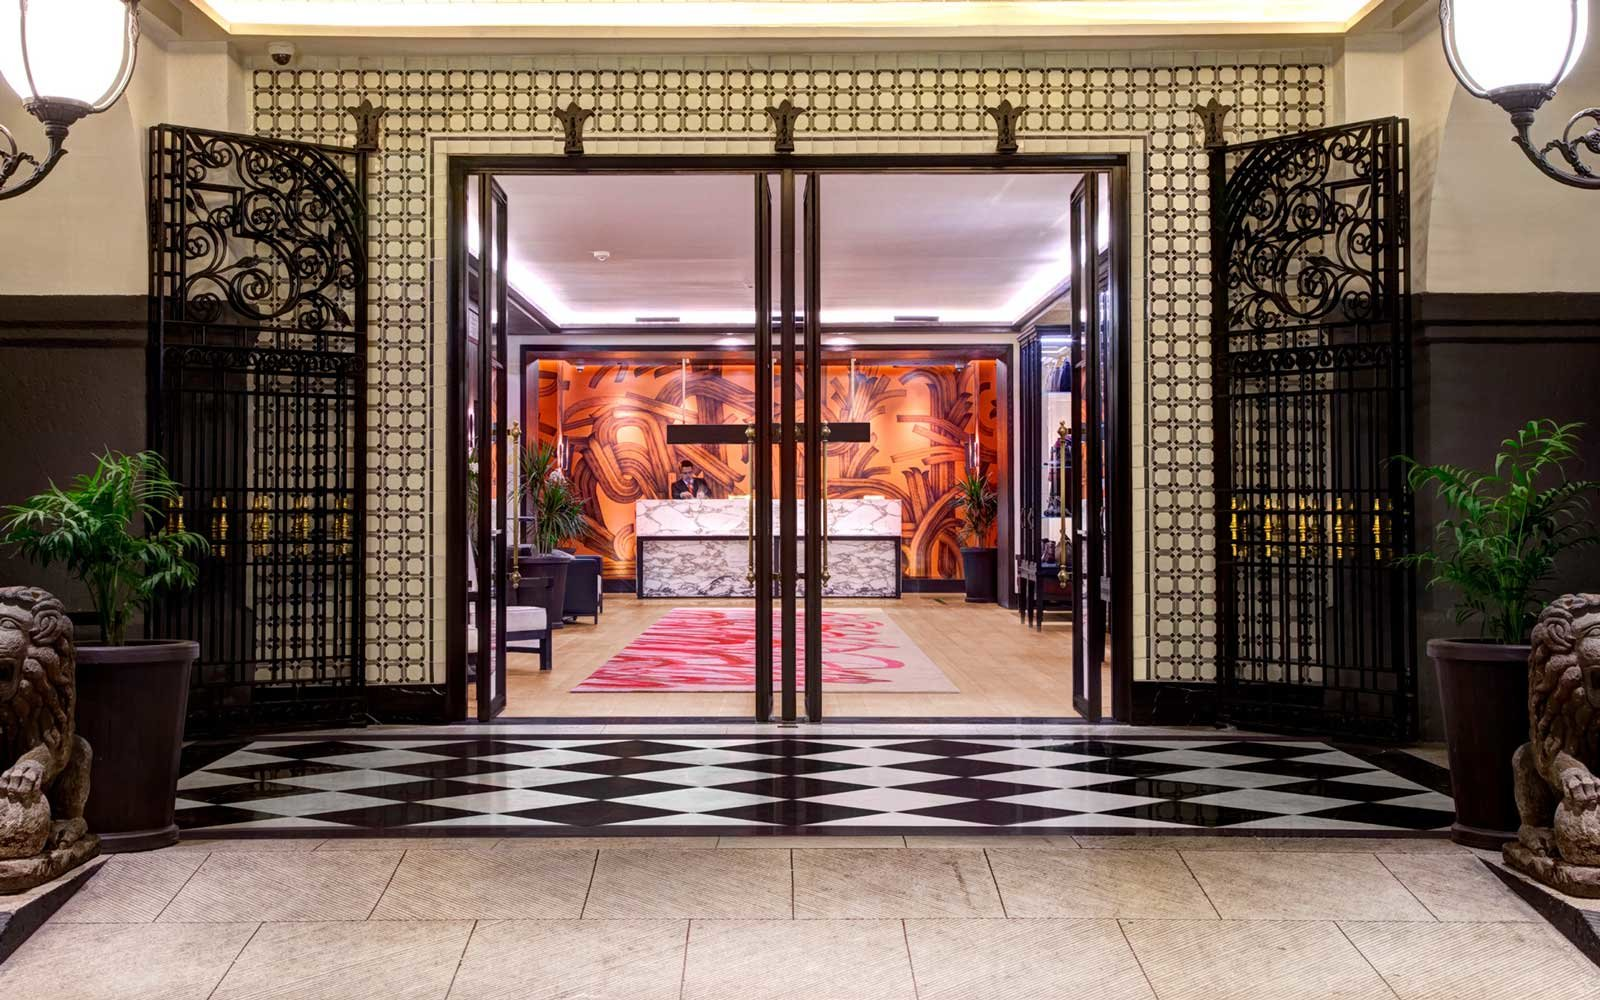 Entrance to the Four Seasons Mexico City Hotel